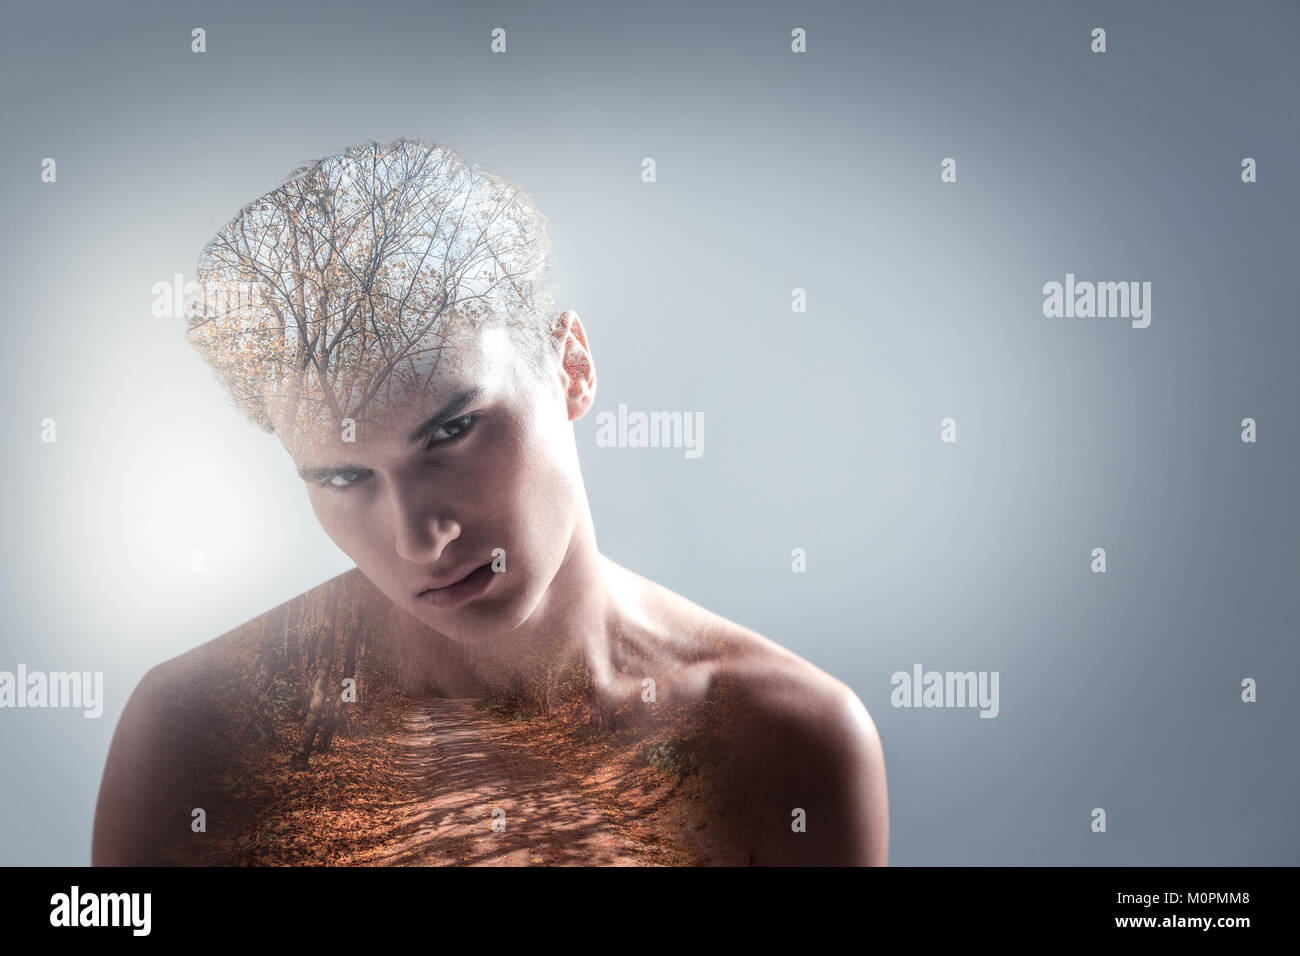 Focused young guy estimating level of his creativity - Stock Image